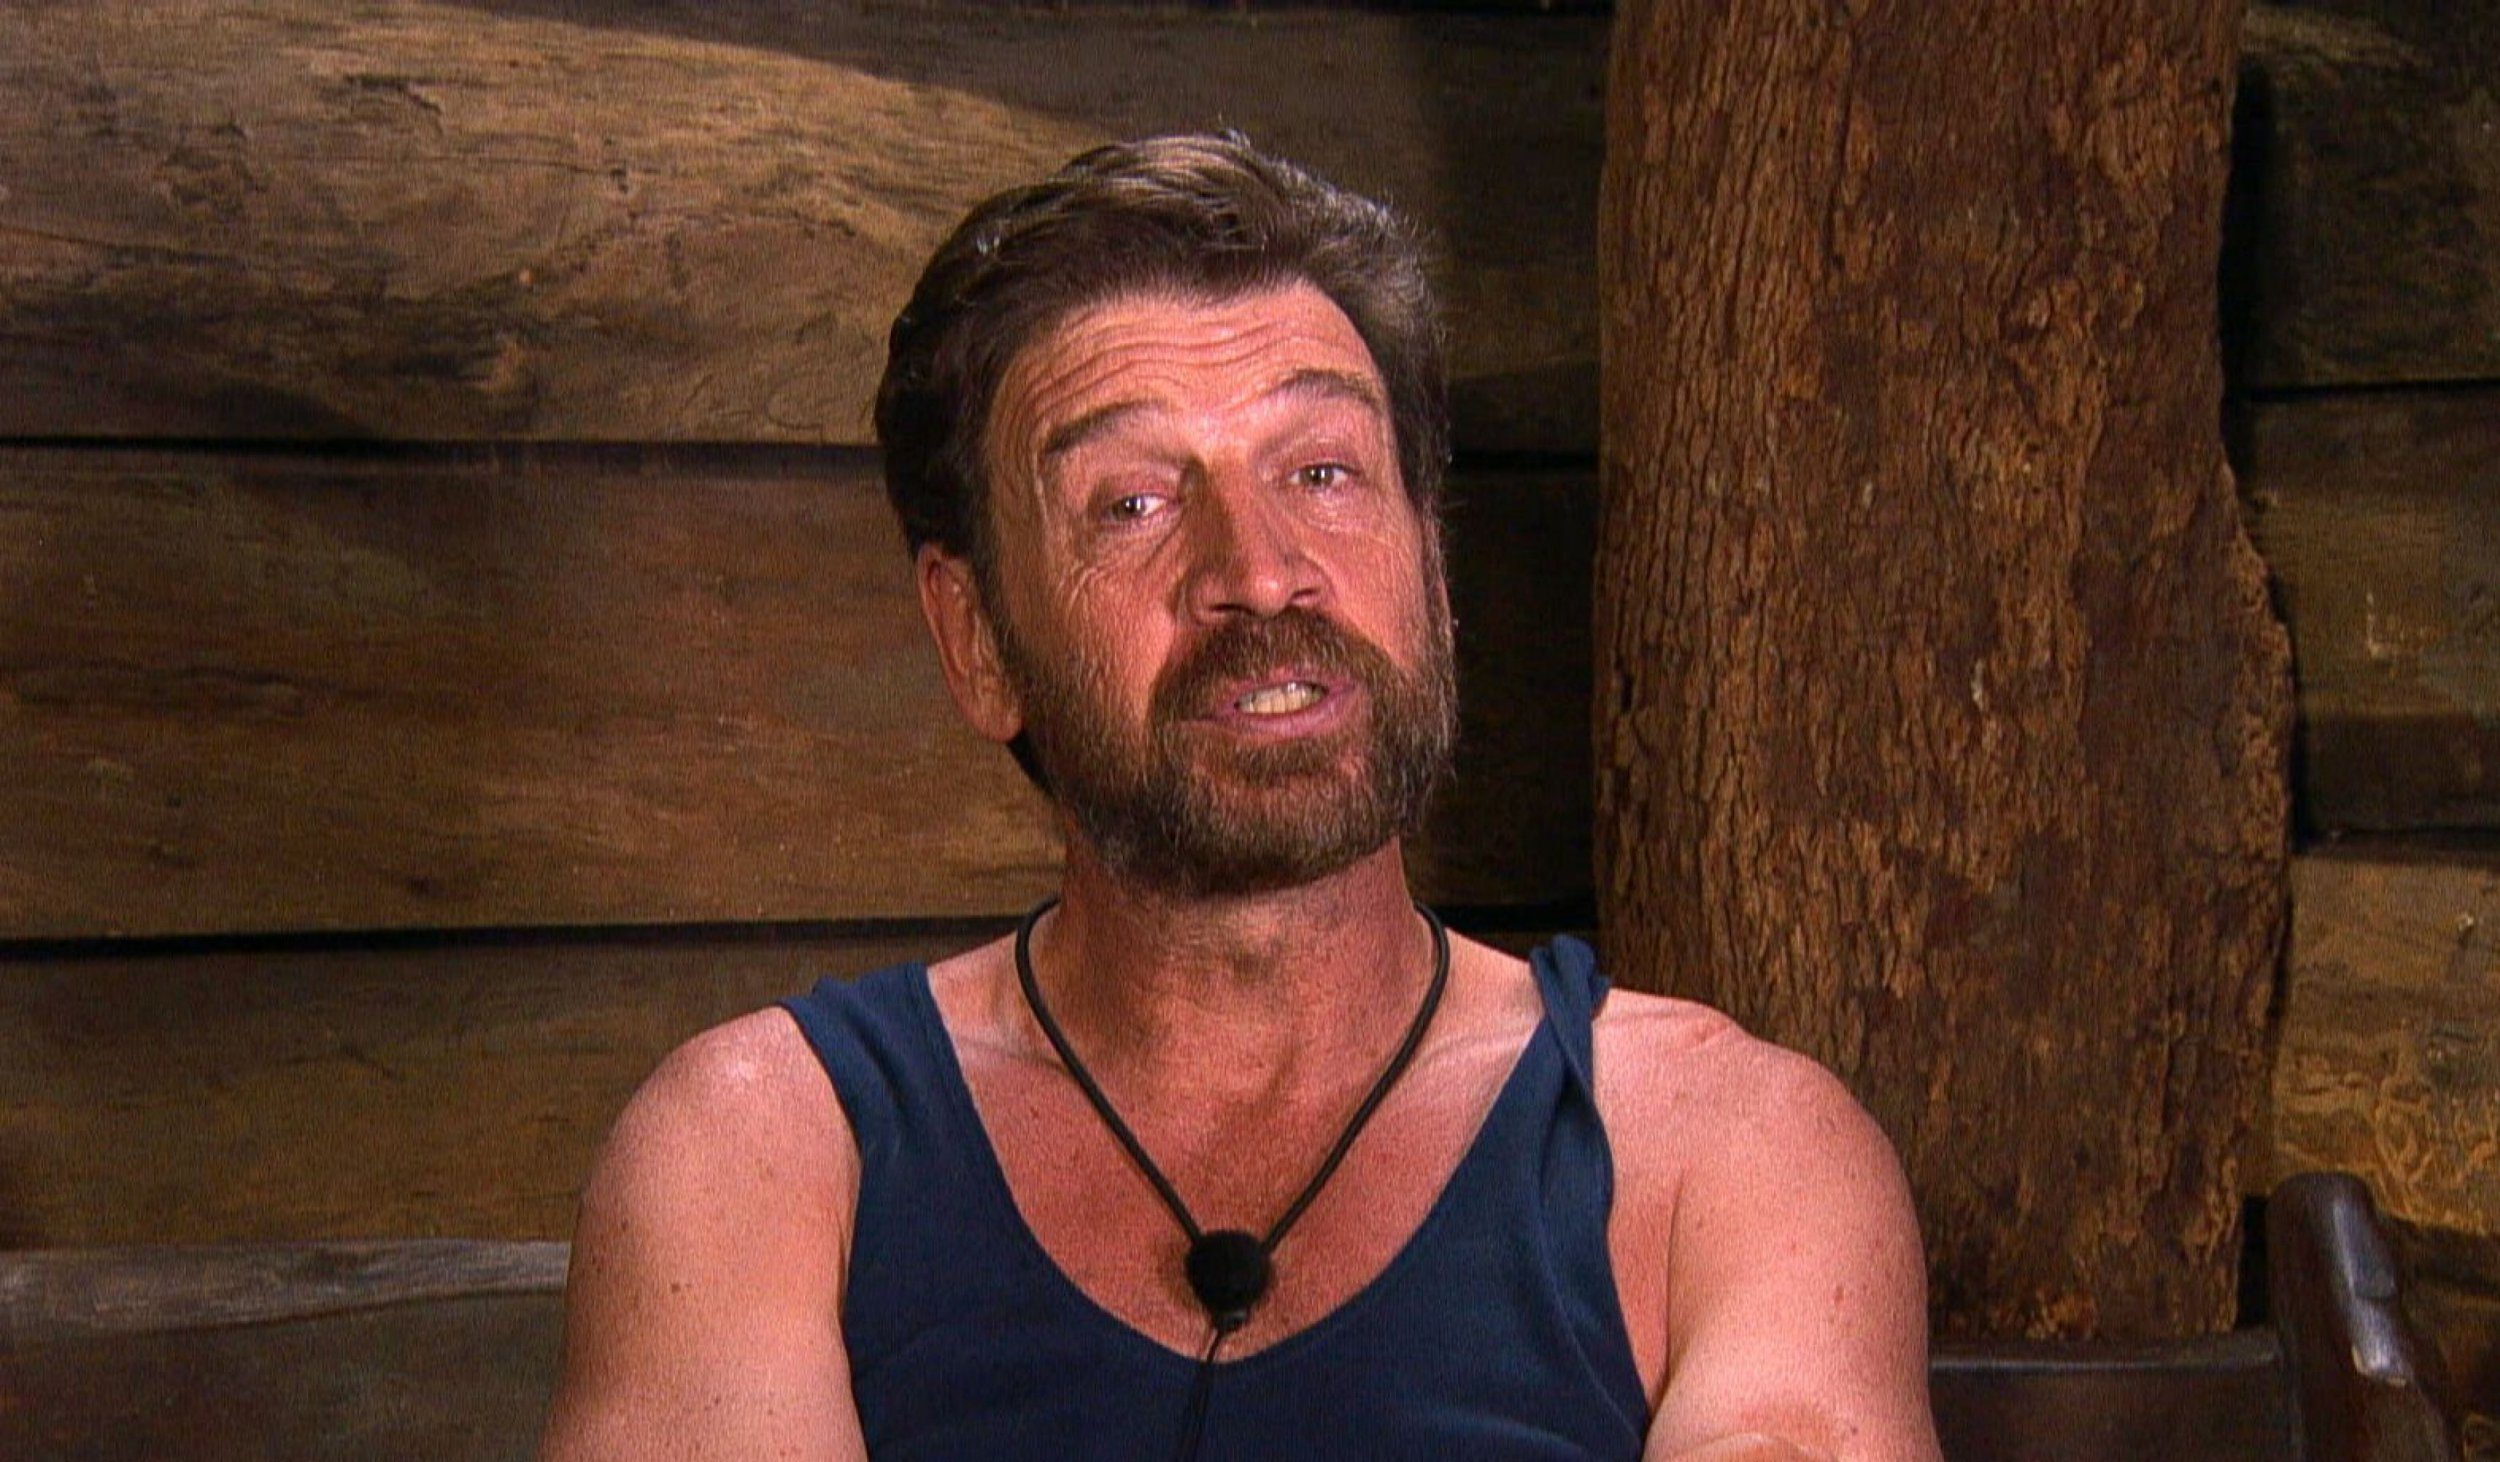 STRICT EMBARGO - NOT TO BE USED BEFORE 22:00 GMT, 28 NOV 2018 - EDITORIAL USE ONLY Mandatory Credit: Photo by ITV/REX (10001287d) Nick Knowles 'I'm a Celebrity... Get Me Out of Here!' TV Show, Series 18, Australia - 28 Nov 2018